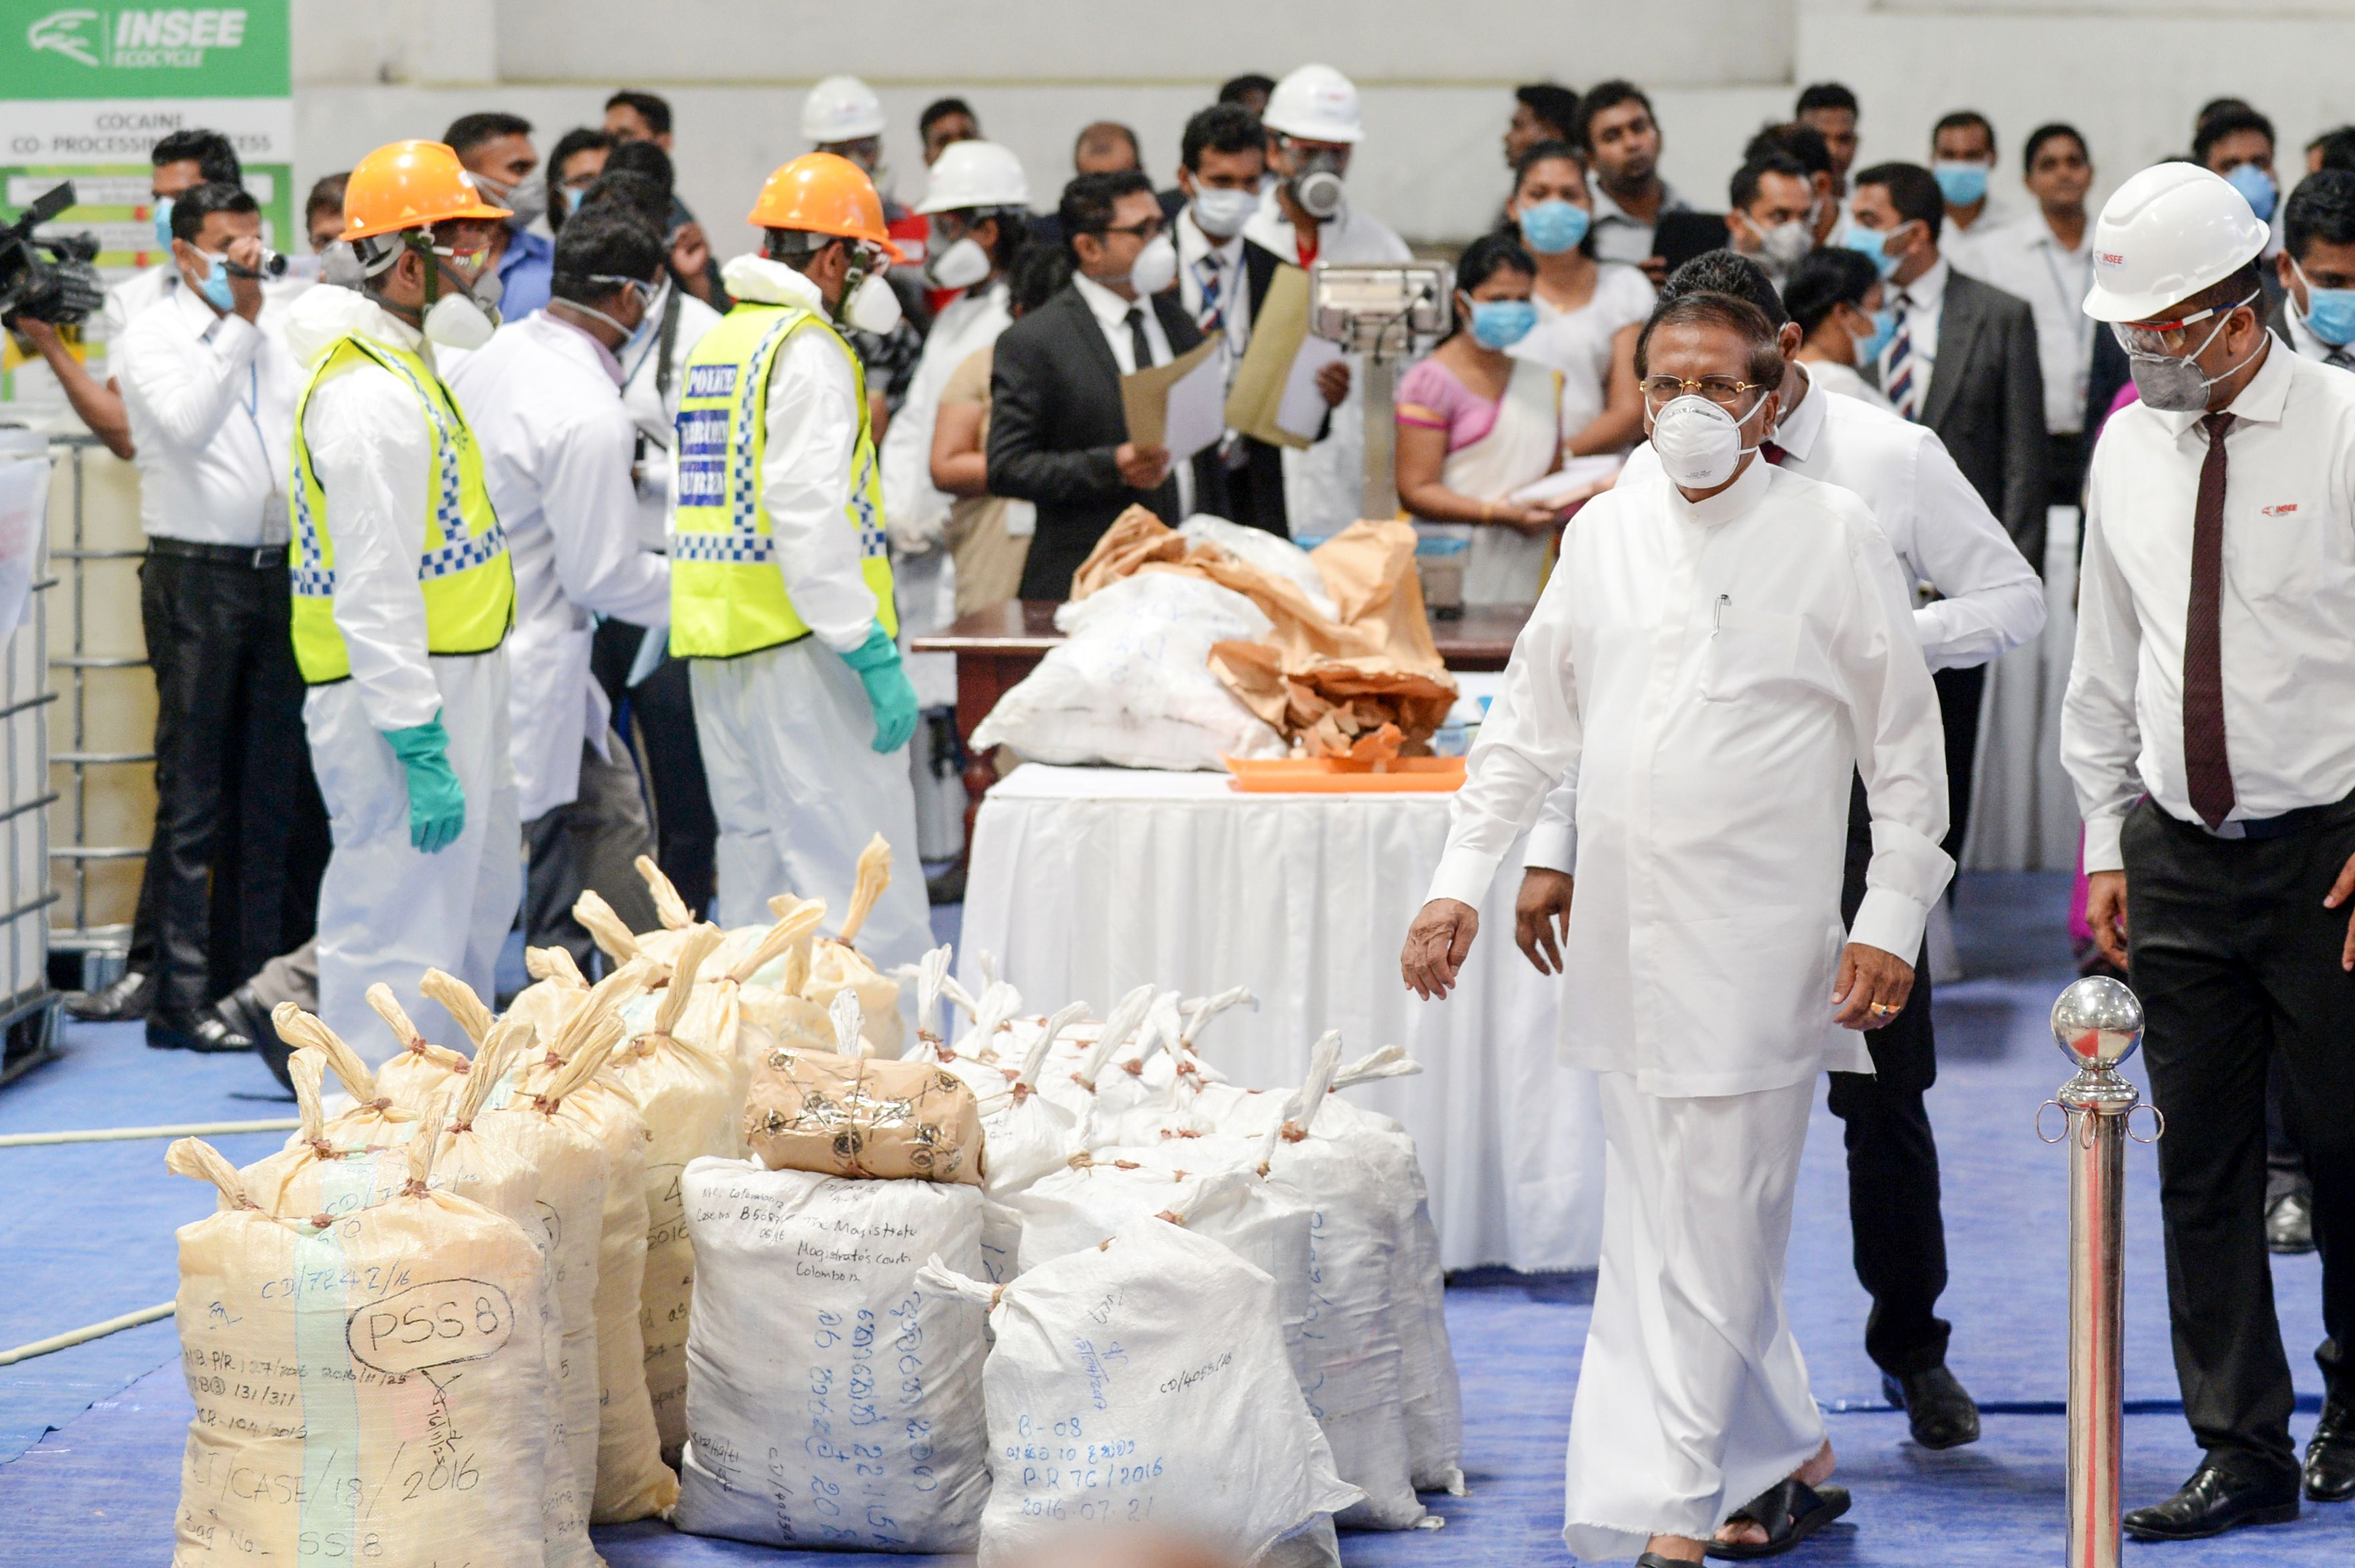 Sri Lankan president Maithripala Sirisena (2R) walks past seized cocaine prepared to be destroyed under judicial supervision at a suburb of Colombo on April 1, 2019. (LAKRUWAN WANNIARACHCHI/AFP/Getty Images)